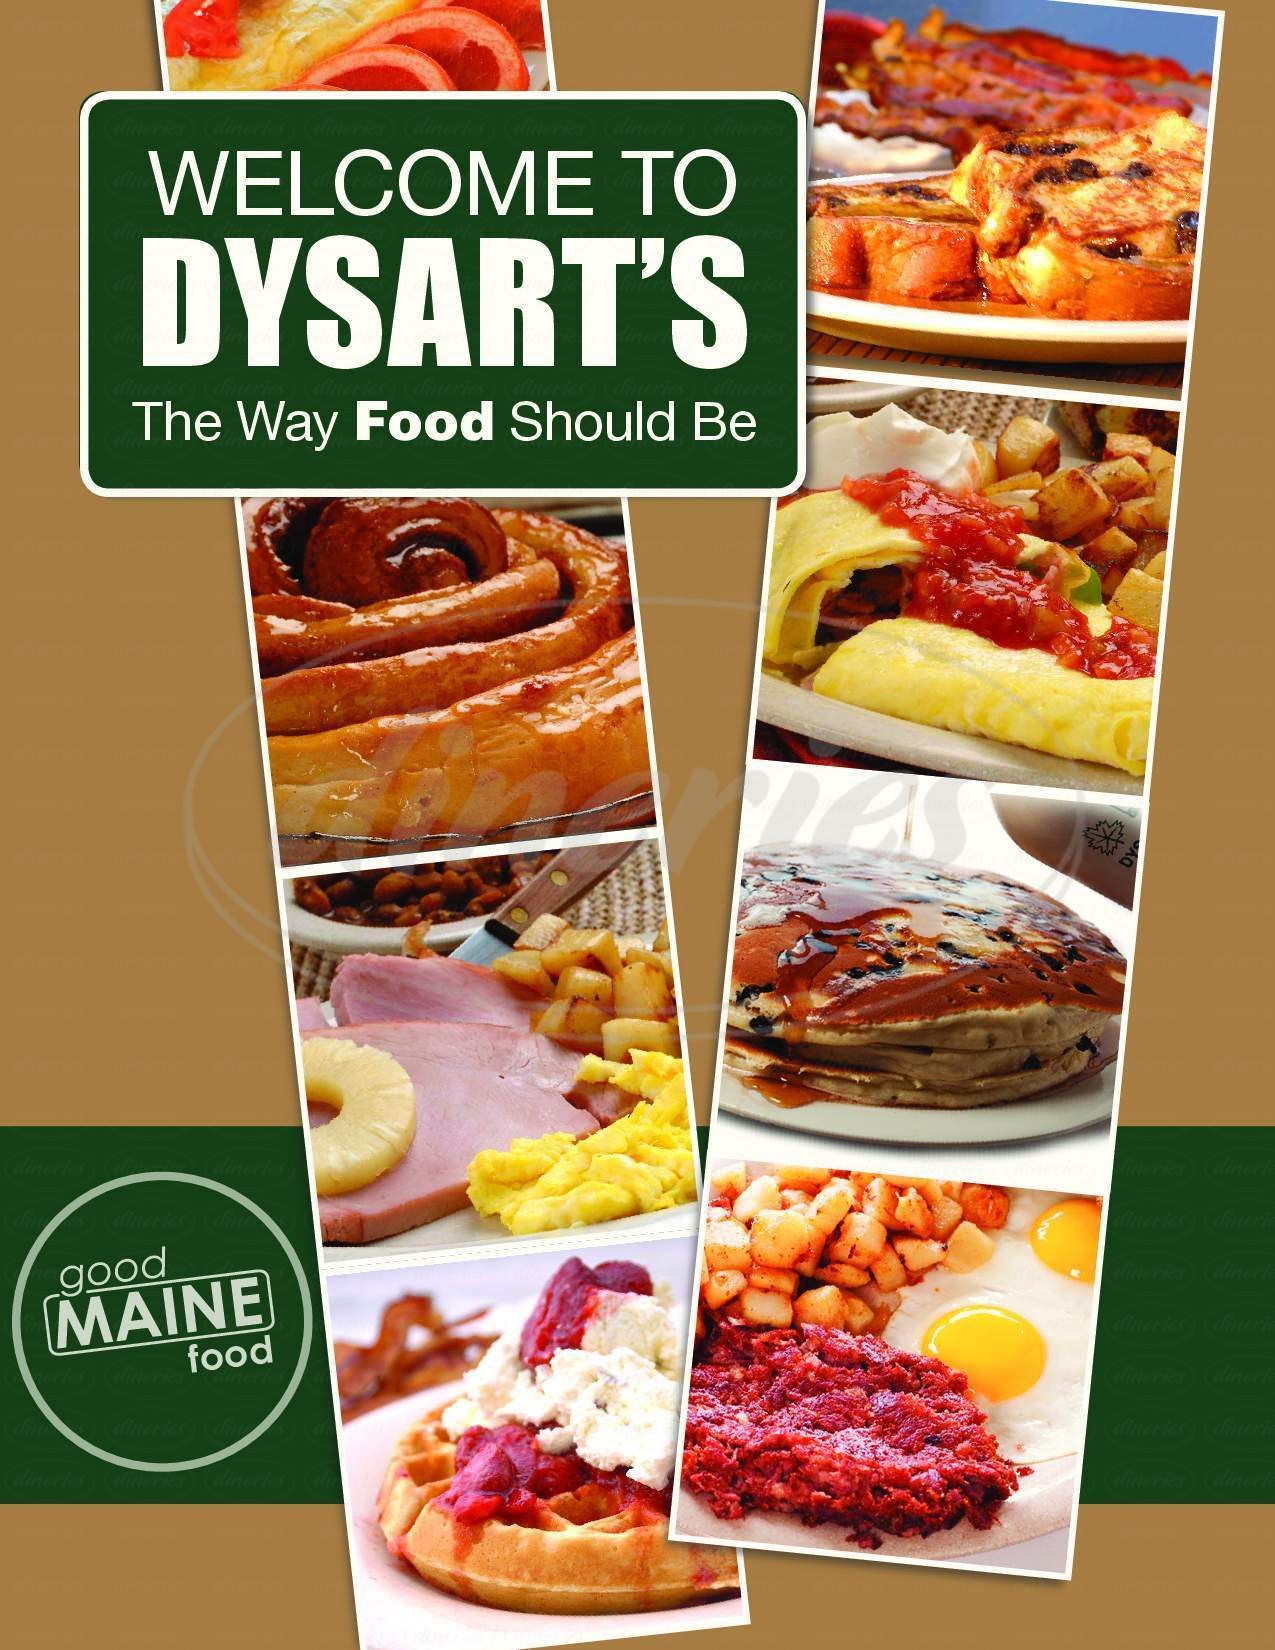 menu for Dysart's Broadway Deli